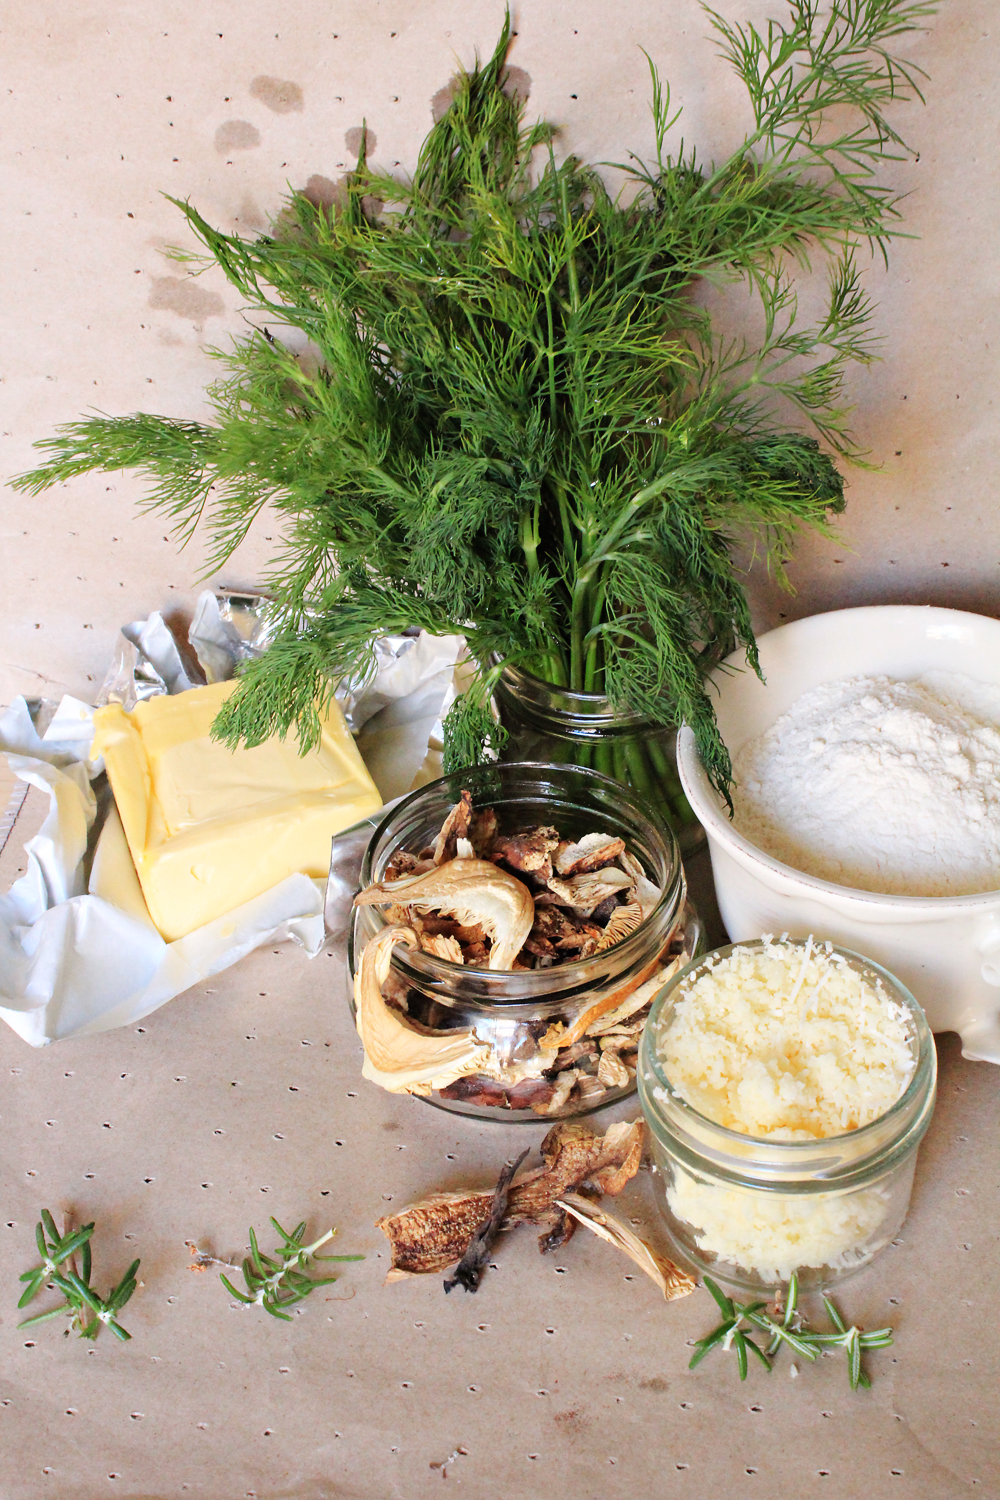 Cheesy Crackers with mushrooms, dill and rosemary - the ingrediants